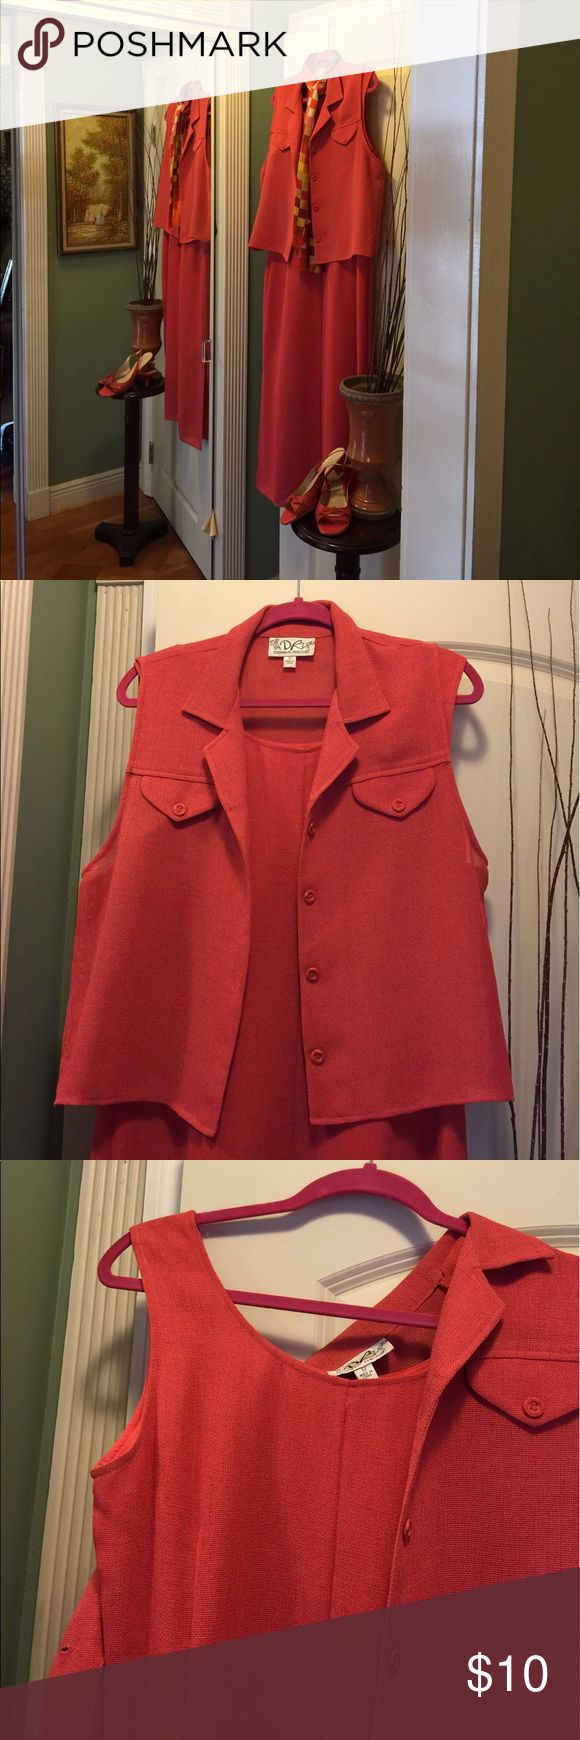 🌺Coral Dress Donna Ricco🌺 Crisp Coral 2 piece dress with matching sleeveless jacket by Donna Ricco almost maxi long jacket sized 12 dress size 10 jacket has lovely pocket and button detail made of 100% polyester  dress will fit size 12easily Donna Ricco Dresses Maxi